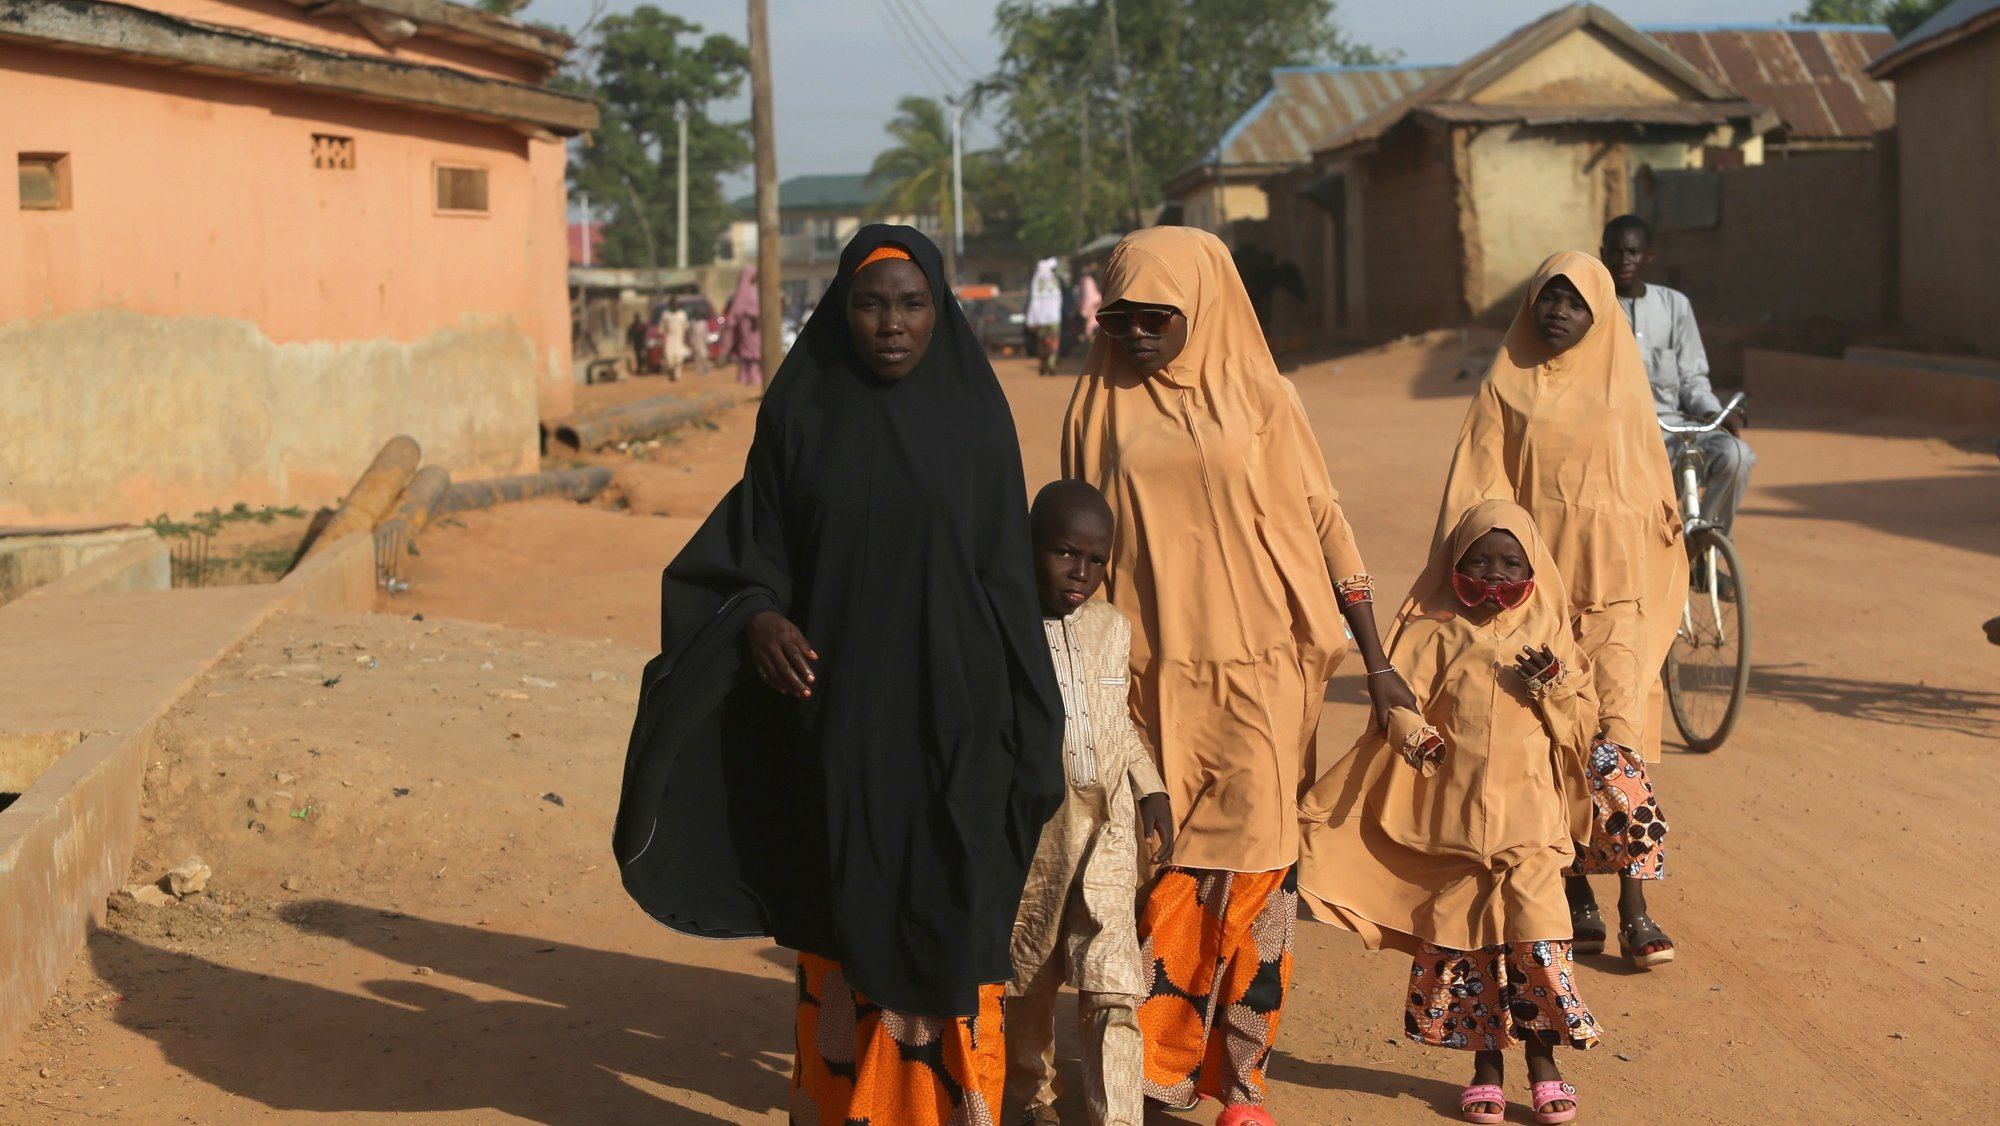 epa09200616 A Muslim woman walks along a road with her children after attending the Jumat prayer at the Zaria central mosque in northern Nigeria 14 May 2021. Muslims around the world are celebrating Eid al-Fitr, the three day festival marking the end of the Muslim holy fasting month of Ramadan. Eid al-Fitr is one of the two major holidays in Islam.  EPA/AKINTUNDE AKINLEYE